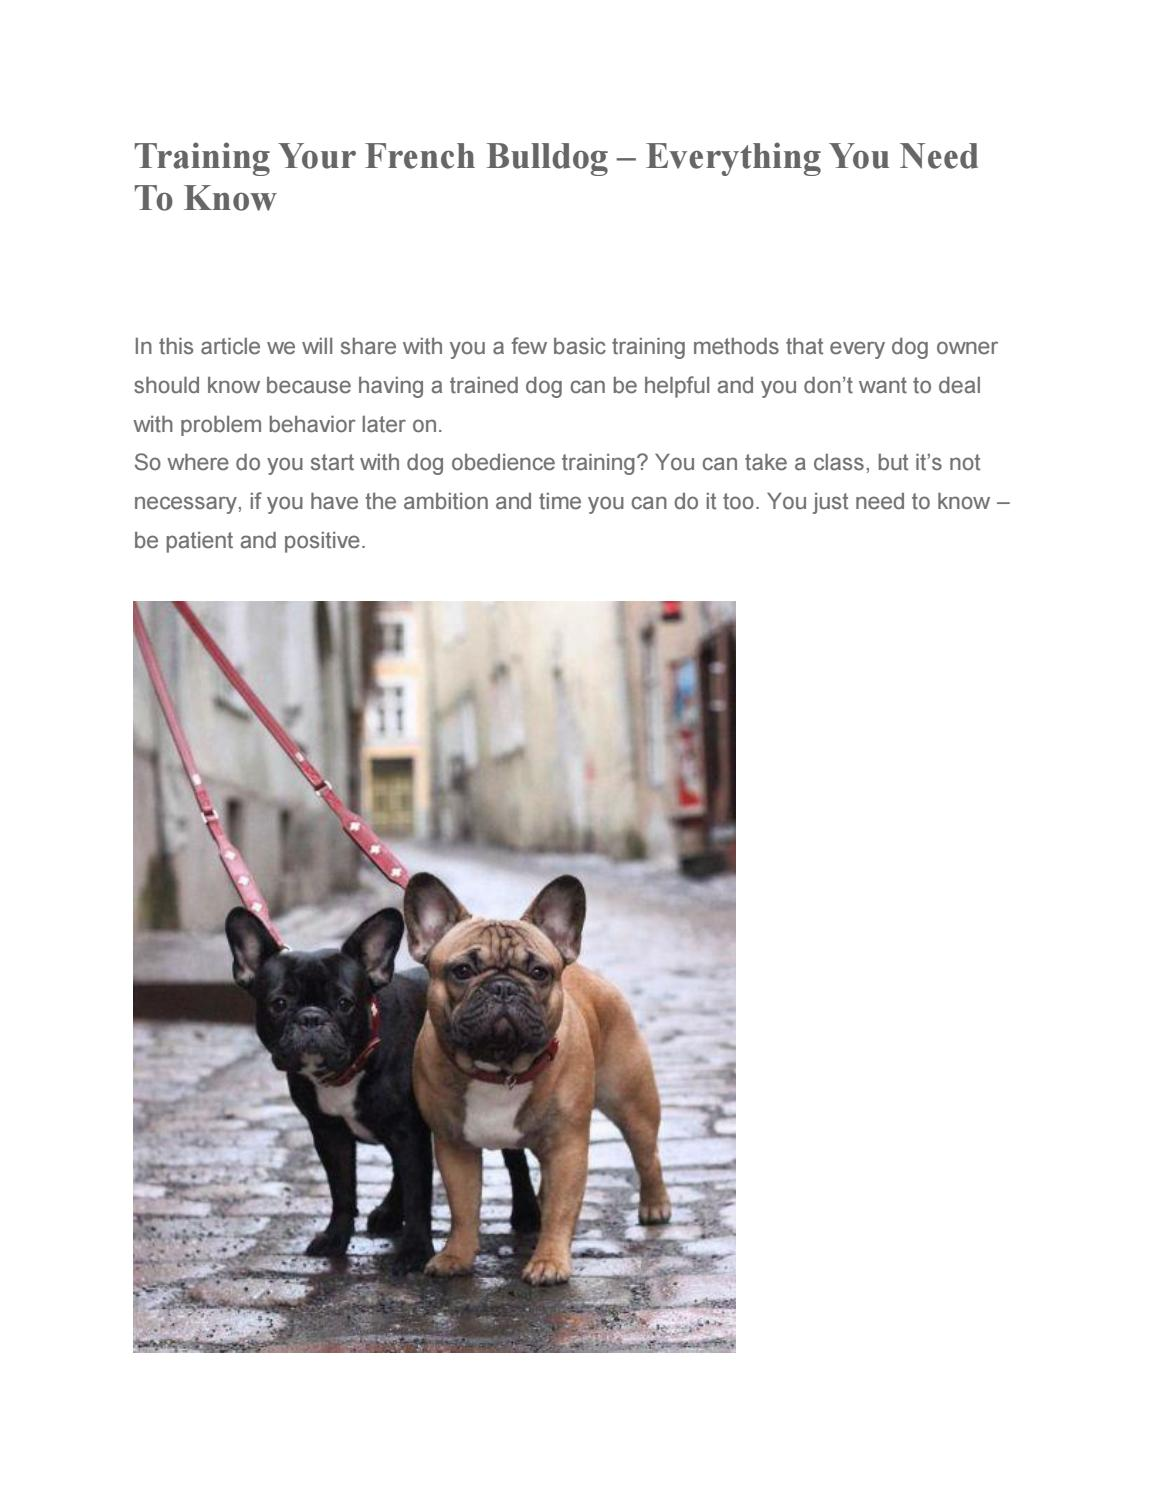 Training Your French Bulldog Everything You Need To Know By Frenchieholics French Bulldog Accessories French Bulldog Clothes French Bulldog Supplies Issuu